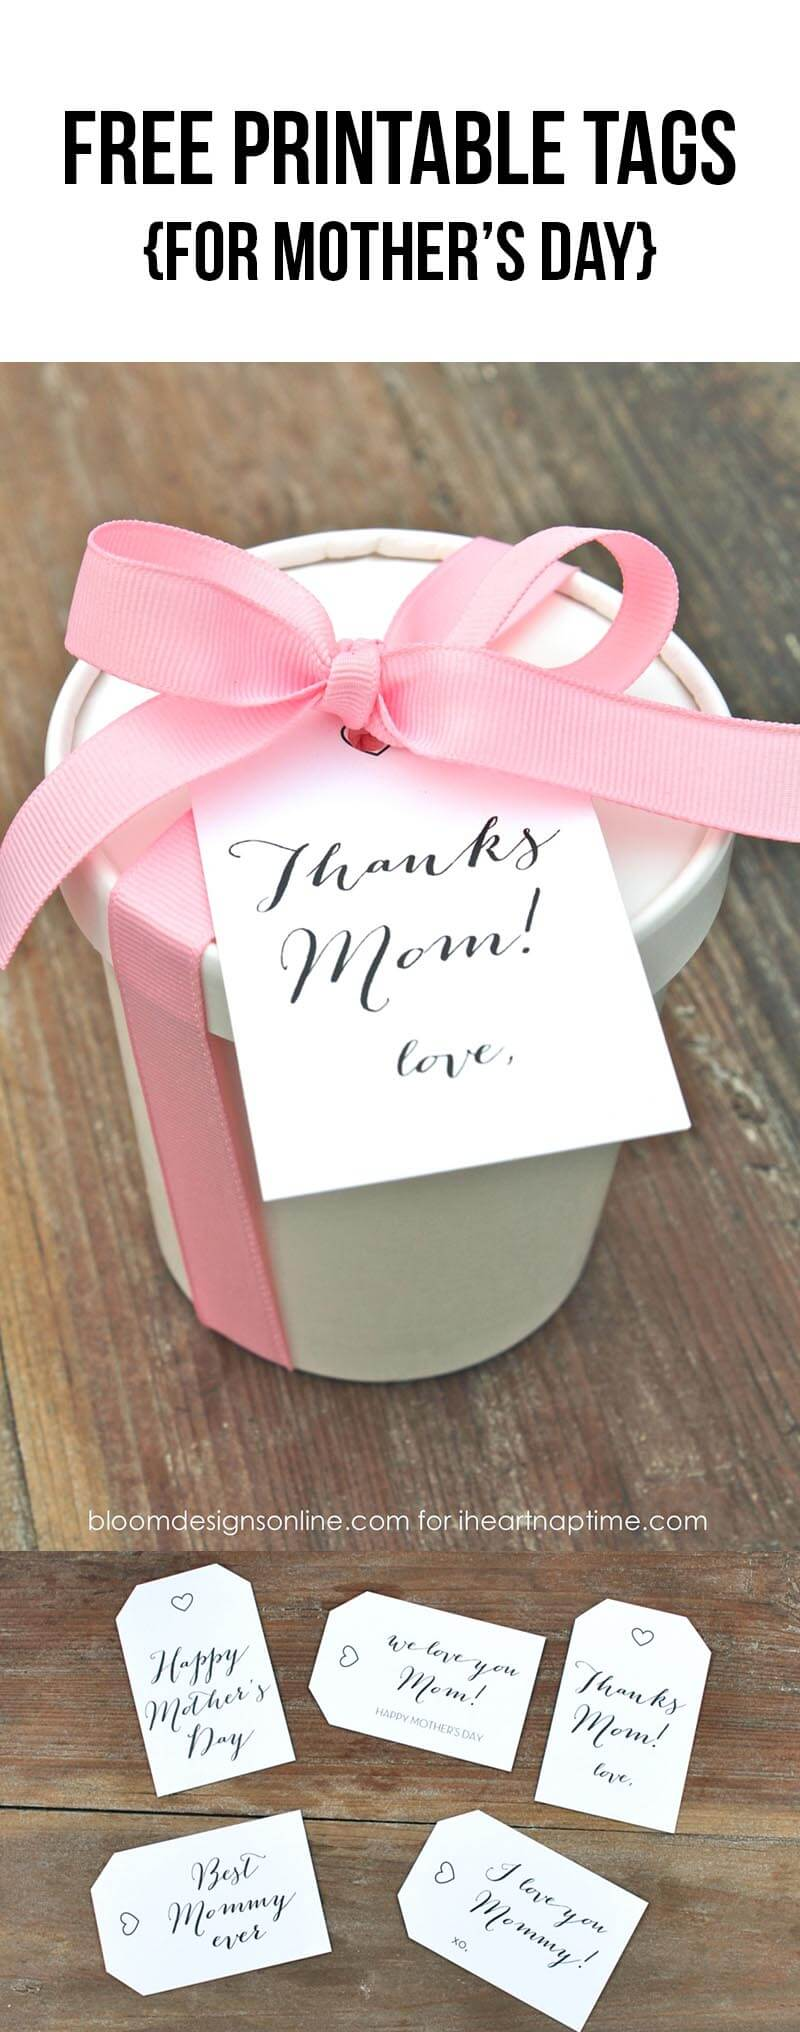 Free printable tags for Mother's Day